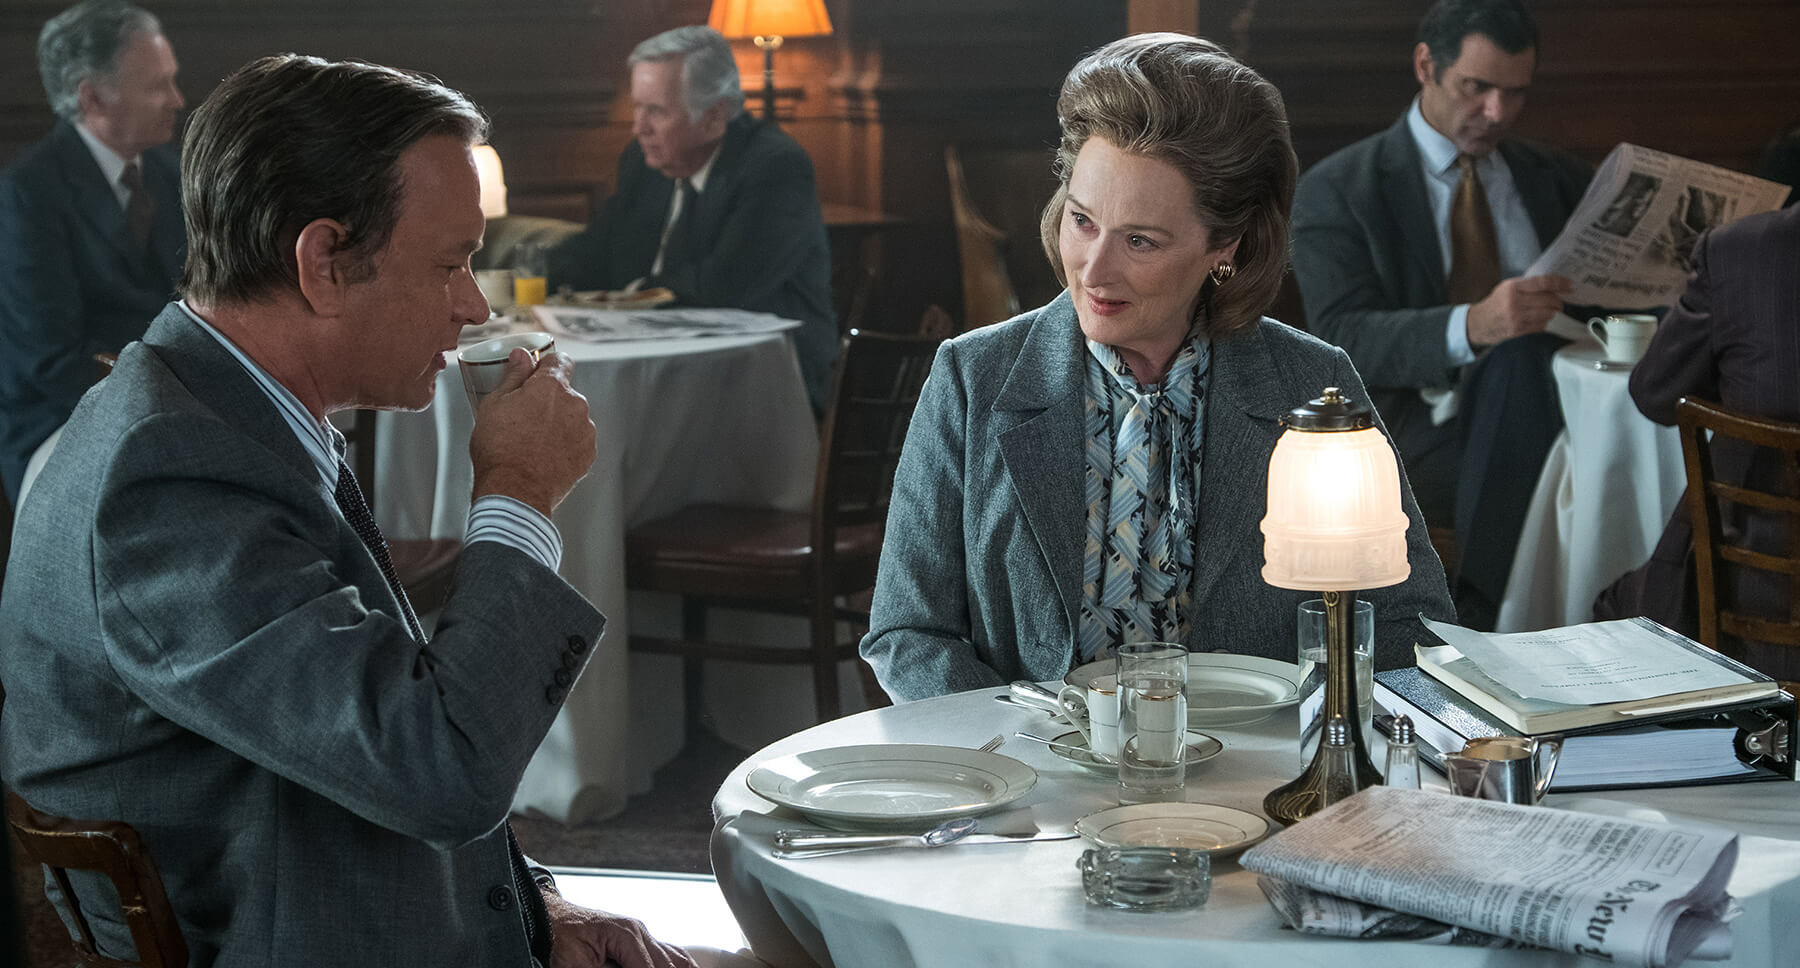 National treasure Meryl Streep in Steven Spielberg's The Post. Image courtesy of 20th Century Fox and Universal Pictures.